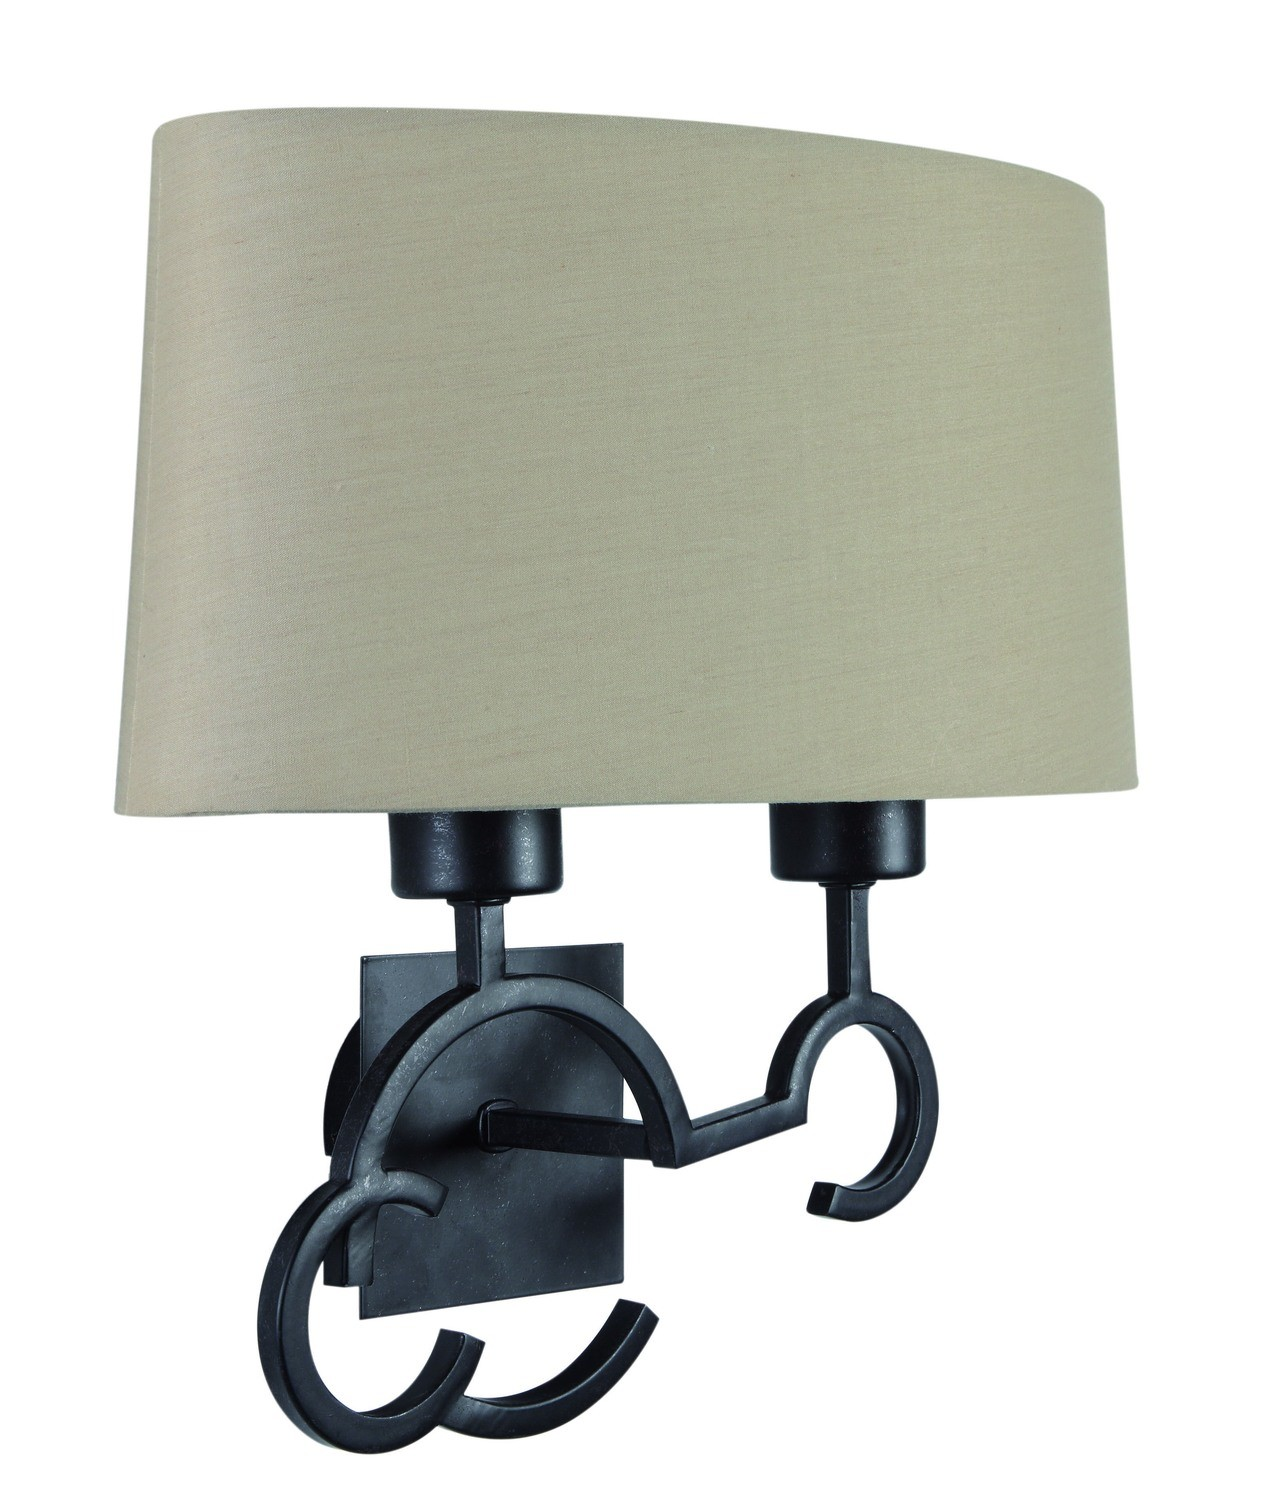 Argi Wall Lamp 2 Light E27 With Taupe Shade Brown Oxide